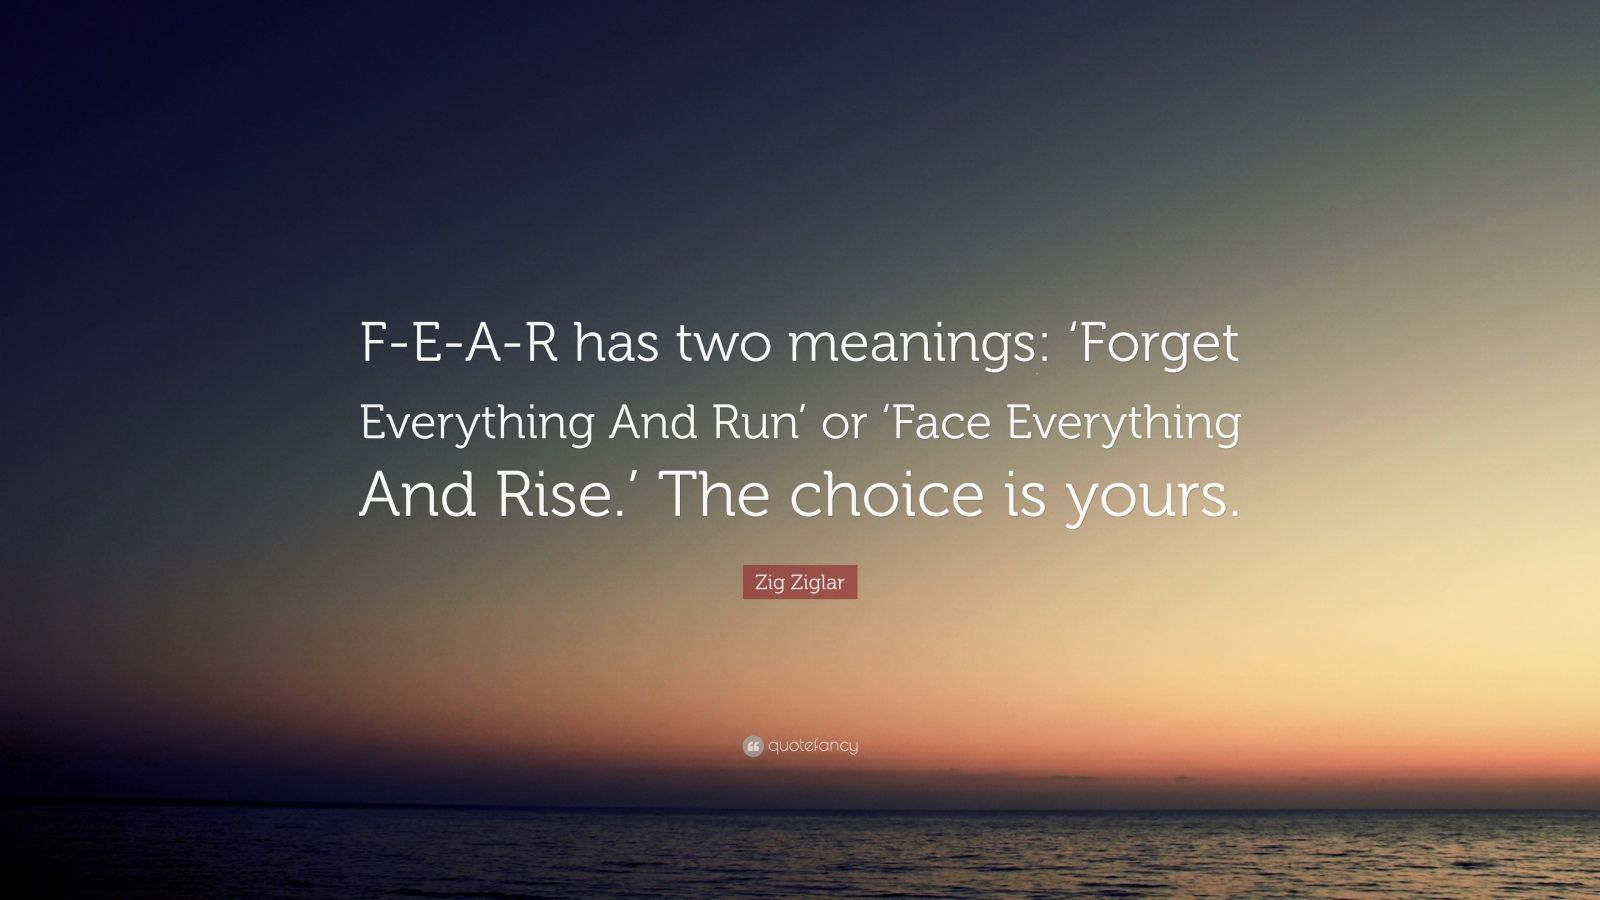 Quotefancy Wallpapers With Inspirational Quotes